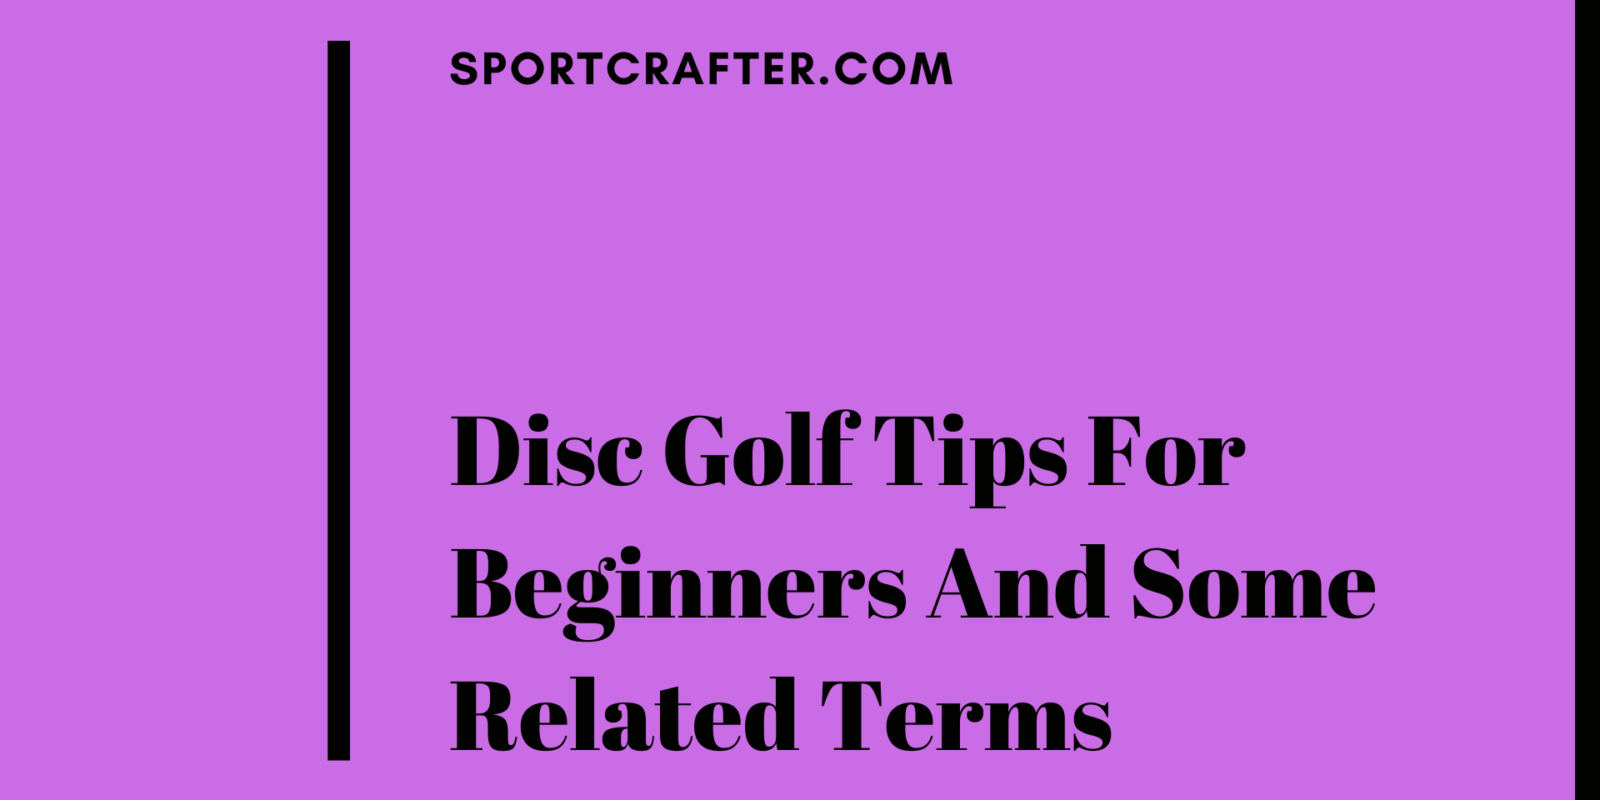 Disc Golf Tips For Beginners